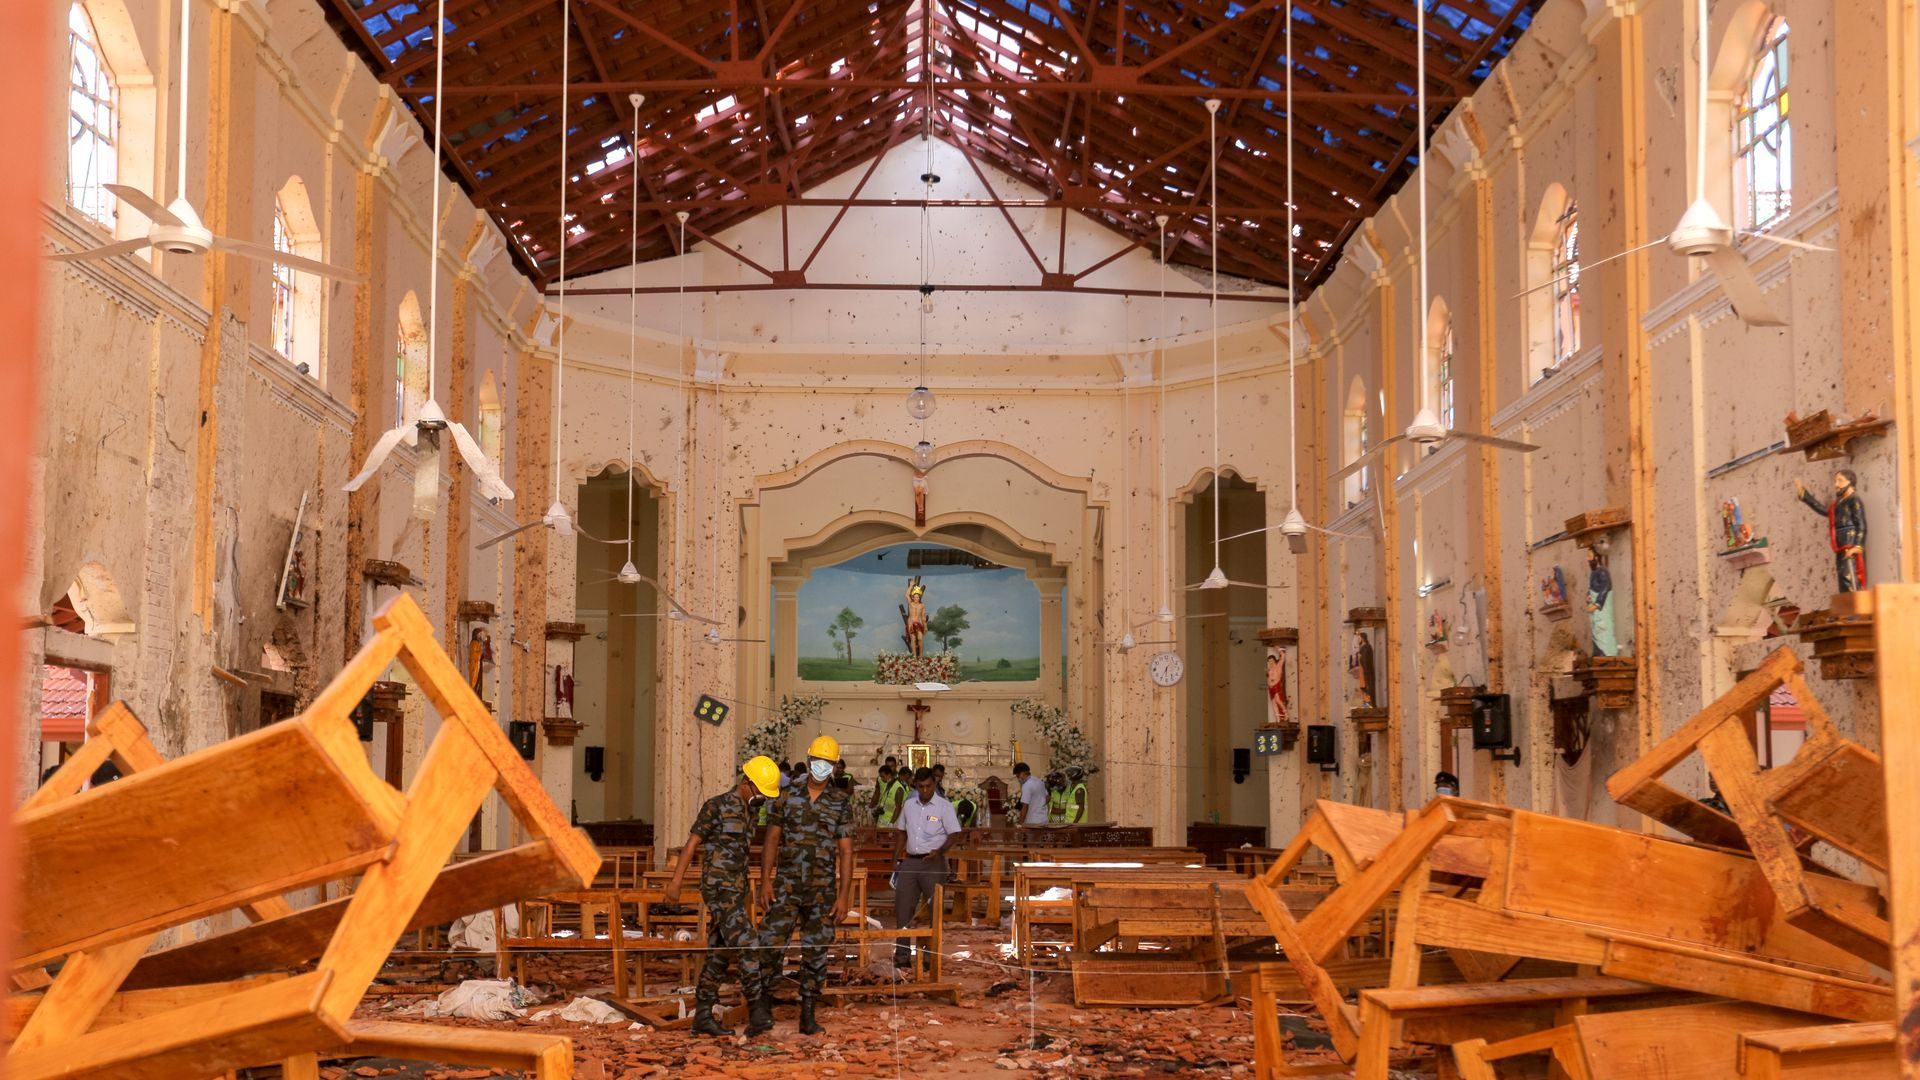 interior of a church after the bomb blast